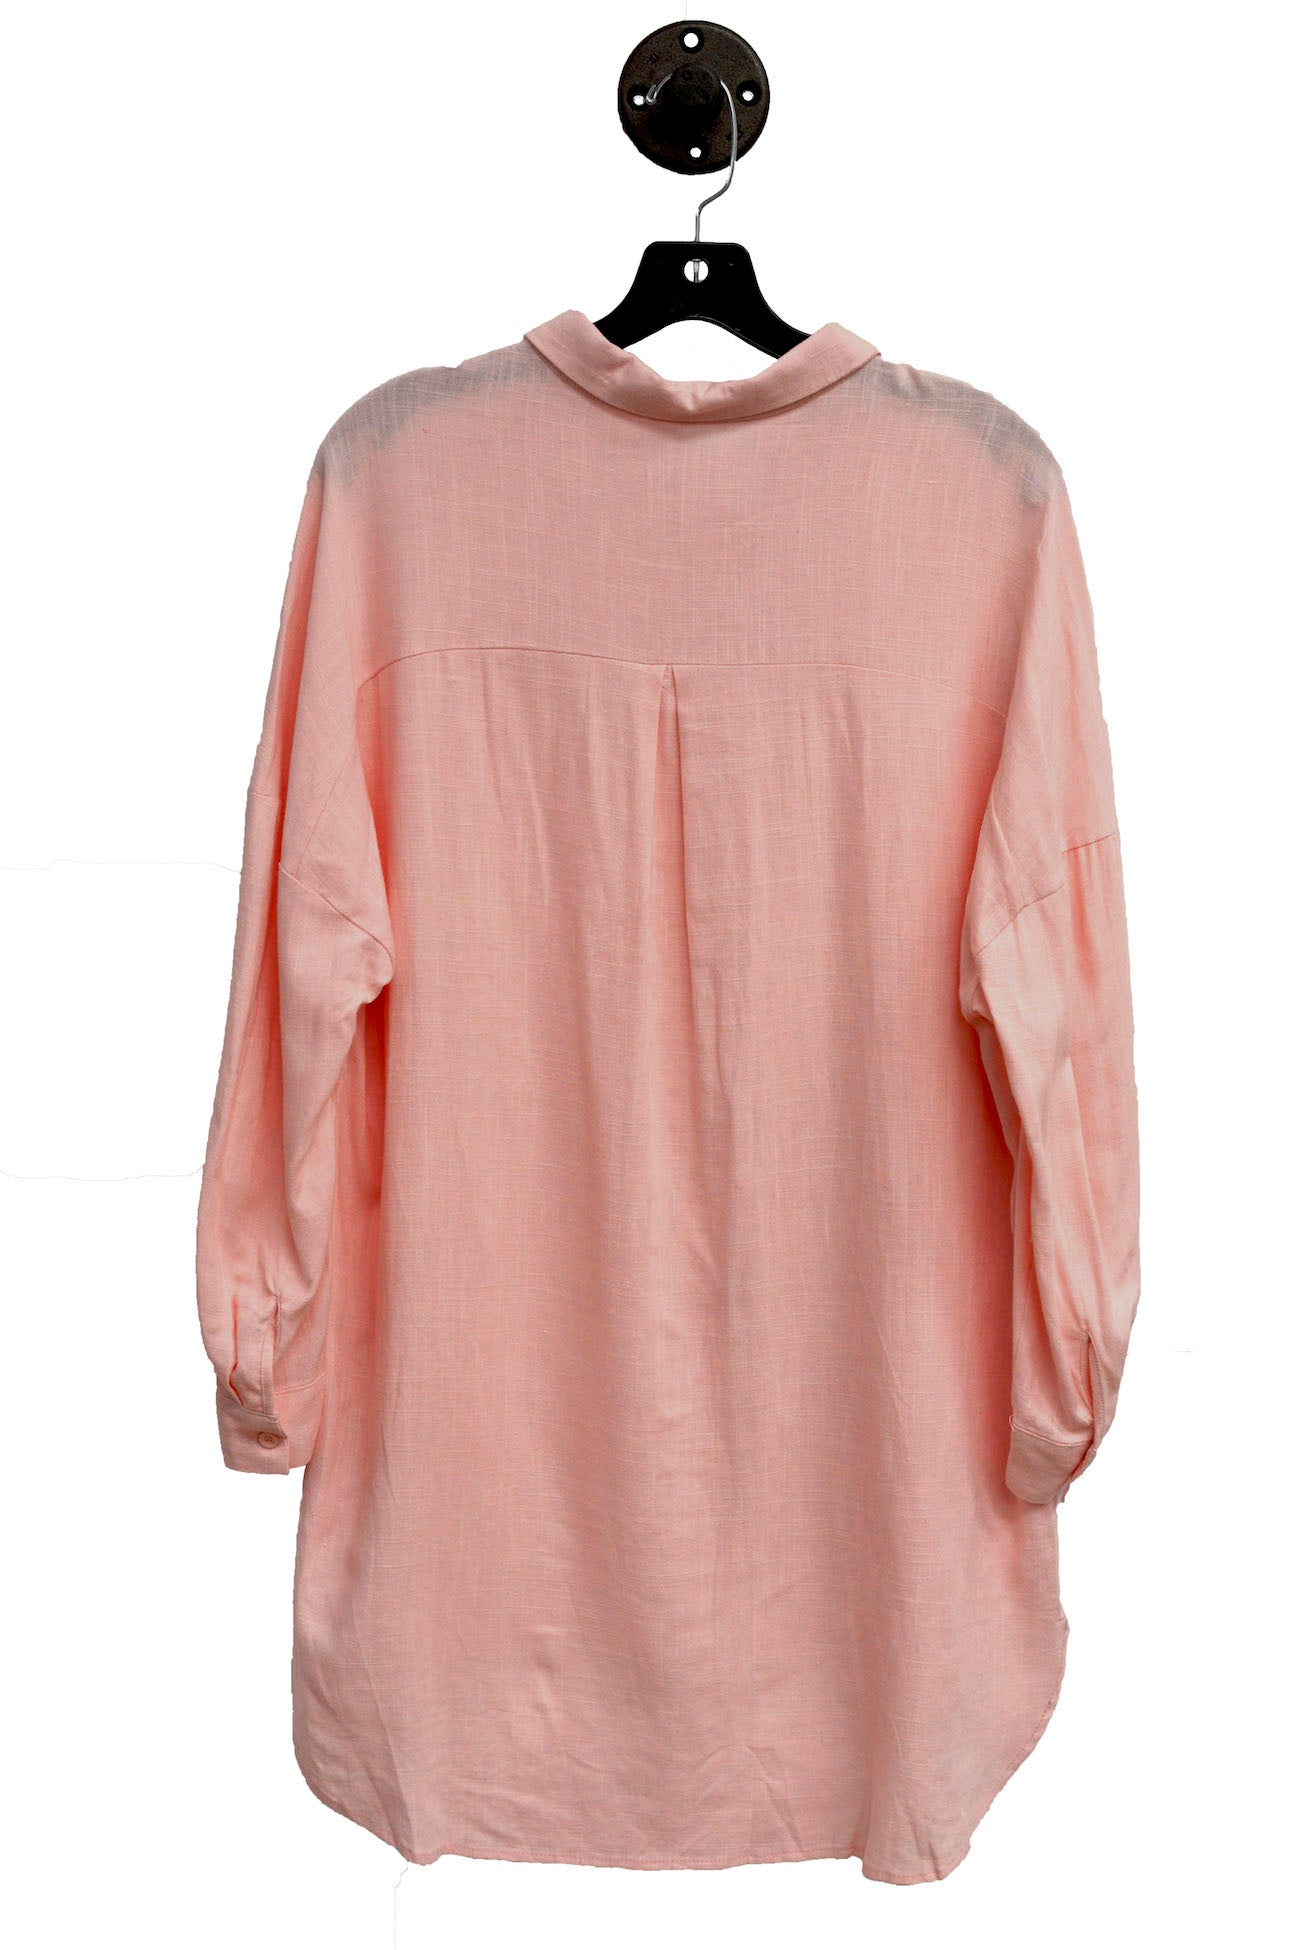 Pink Boyfriend Shirt That Is Oversized Fit With Buttons